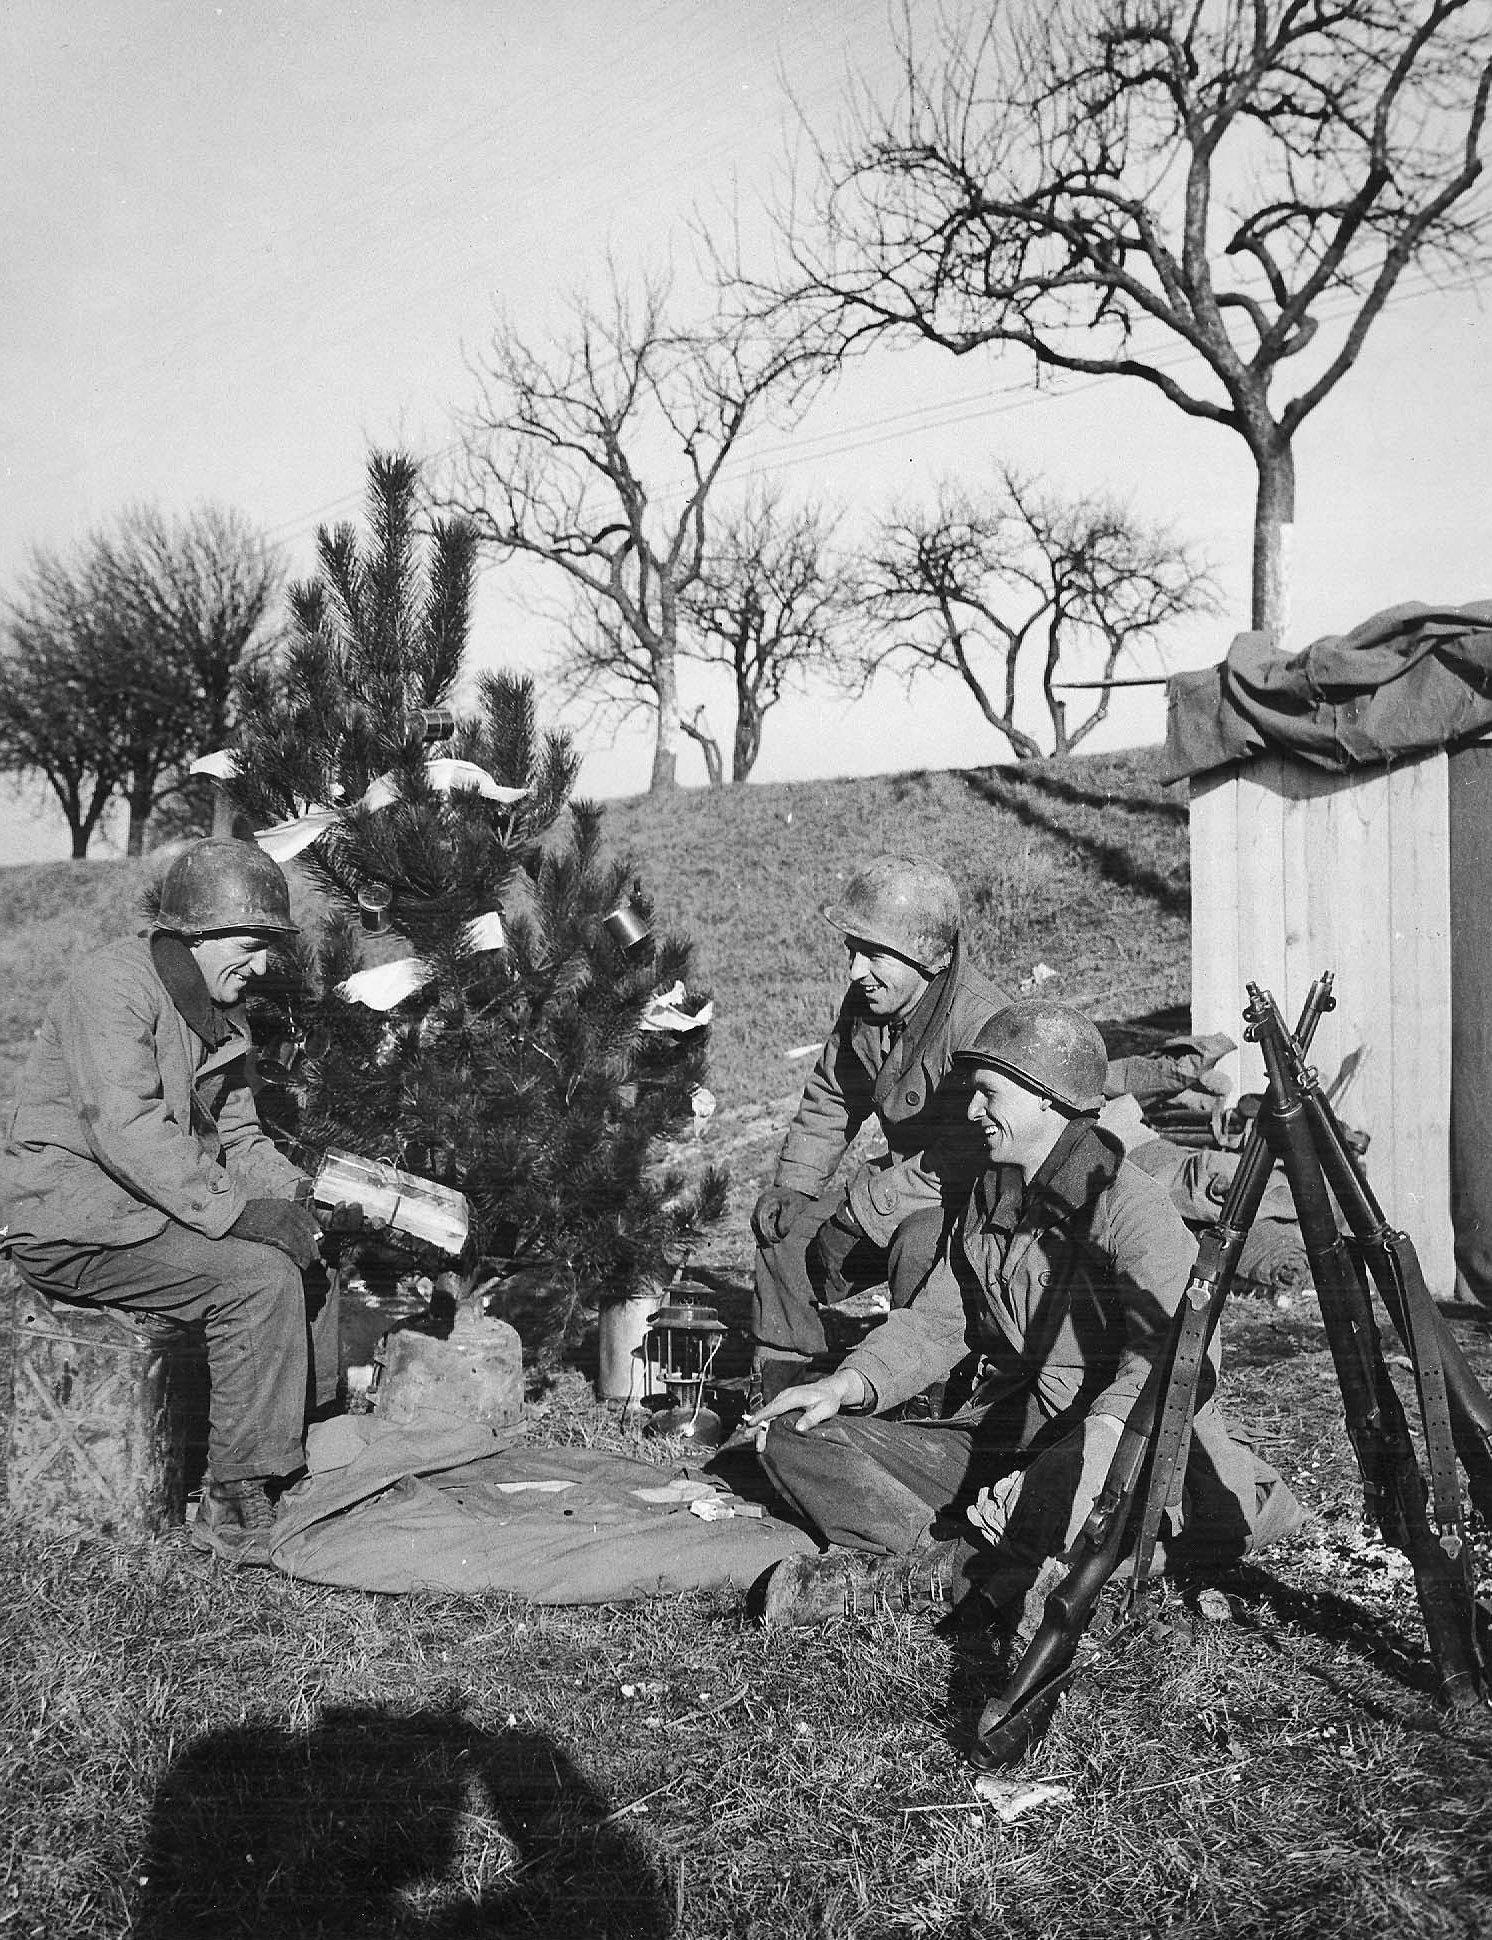 Soldiers of the 463rd Combat Engineers in France near the German border observe Christmas, 25 Dec 1944; note K-ration cans as ornaments (US Army Signal Corps photo)